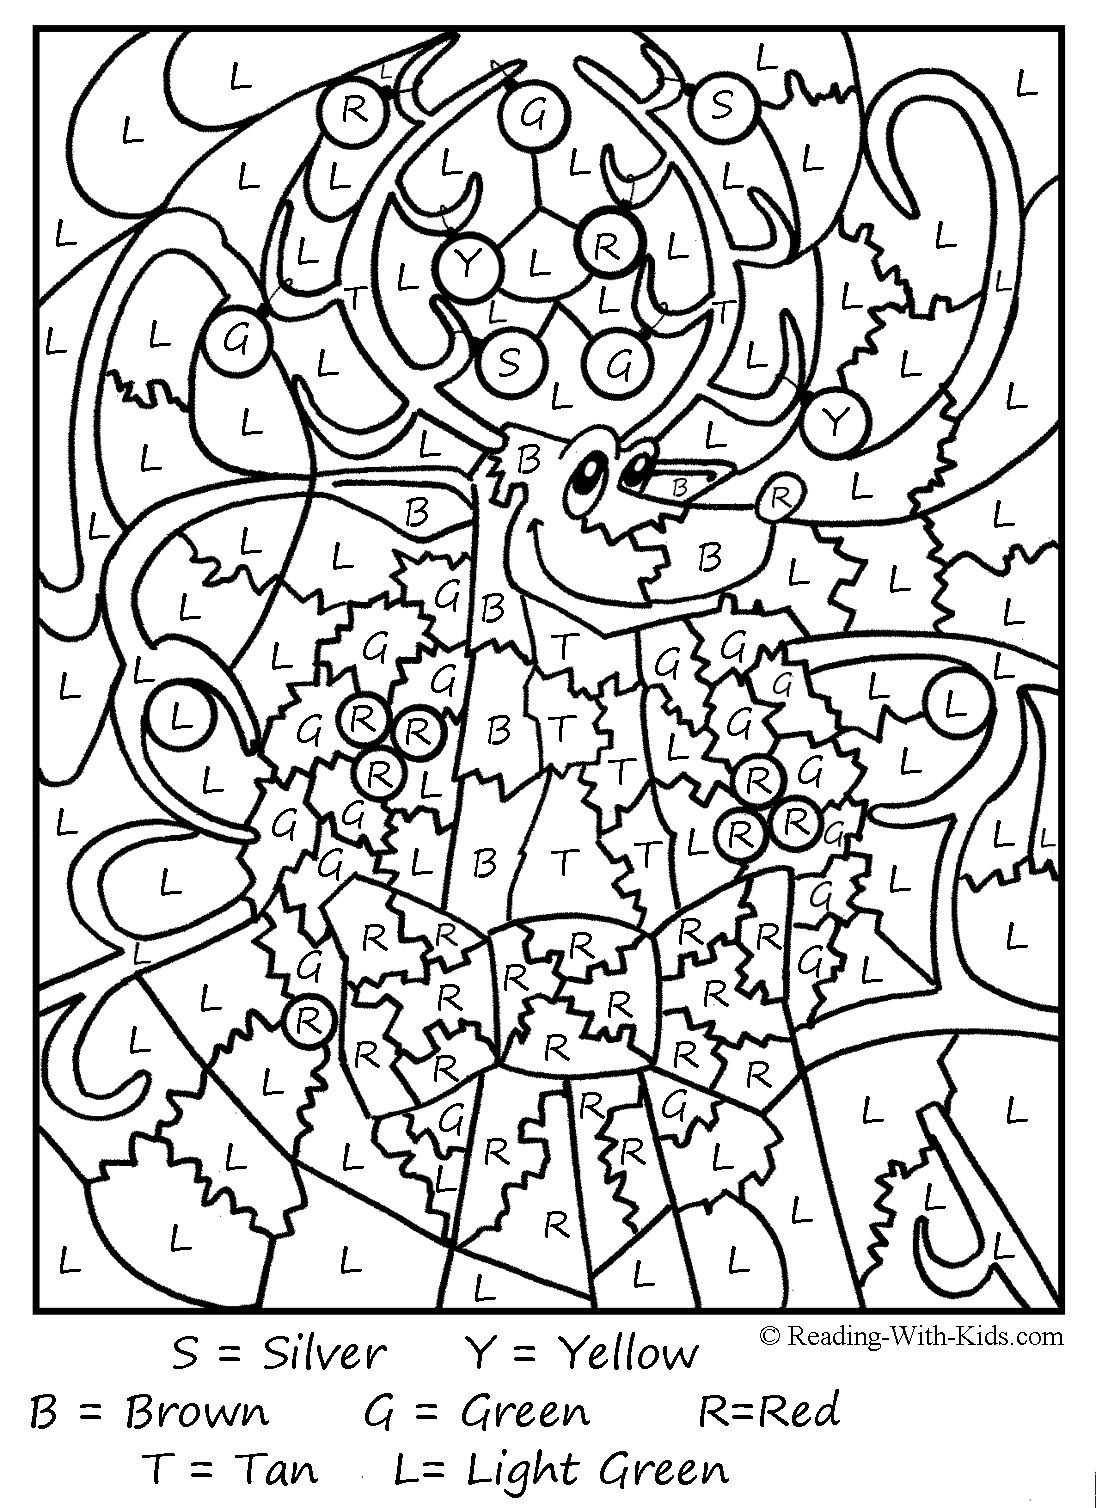 Color by letter and color by number coloring pages are fun and educational the instructions are simple to determine the color of each space